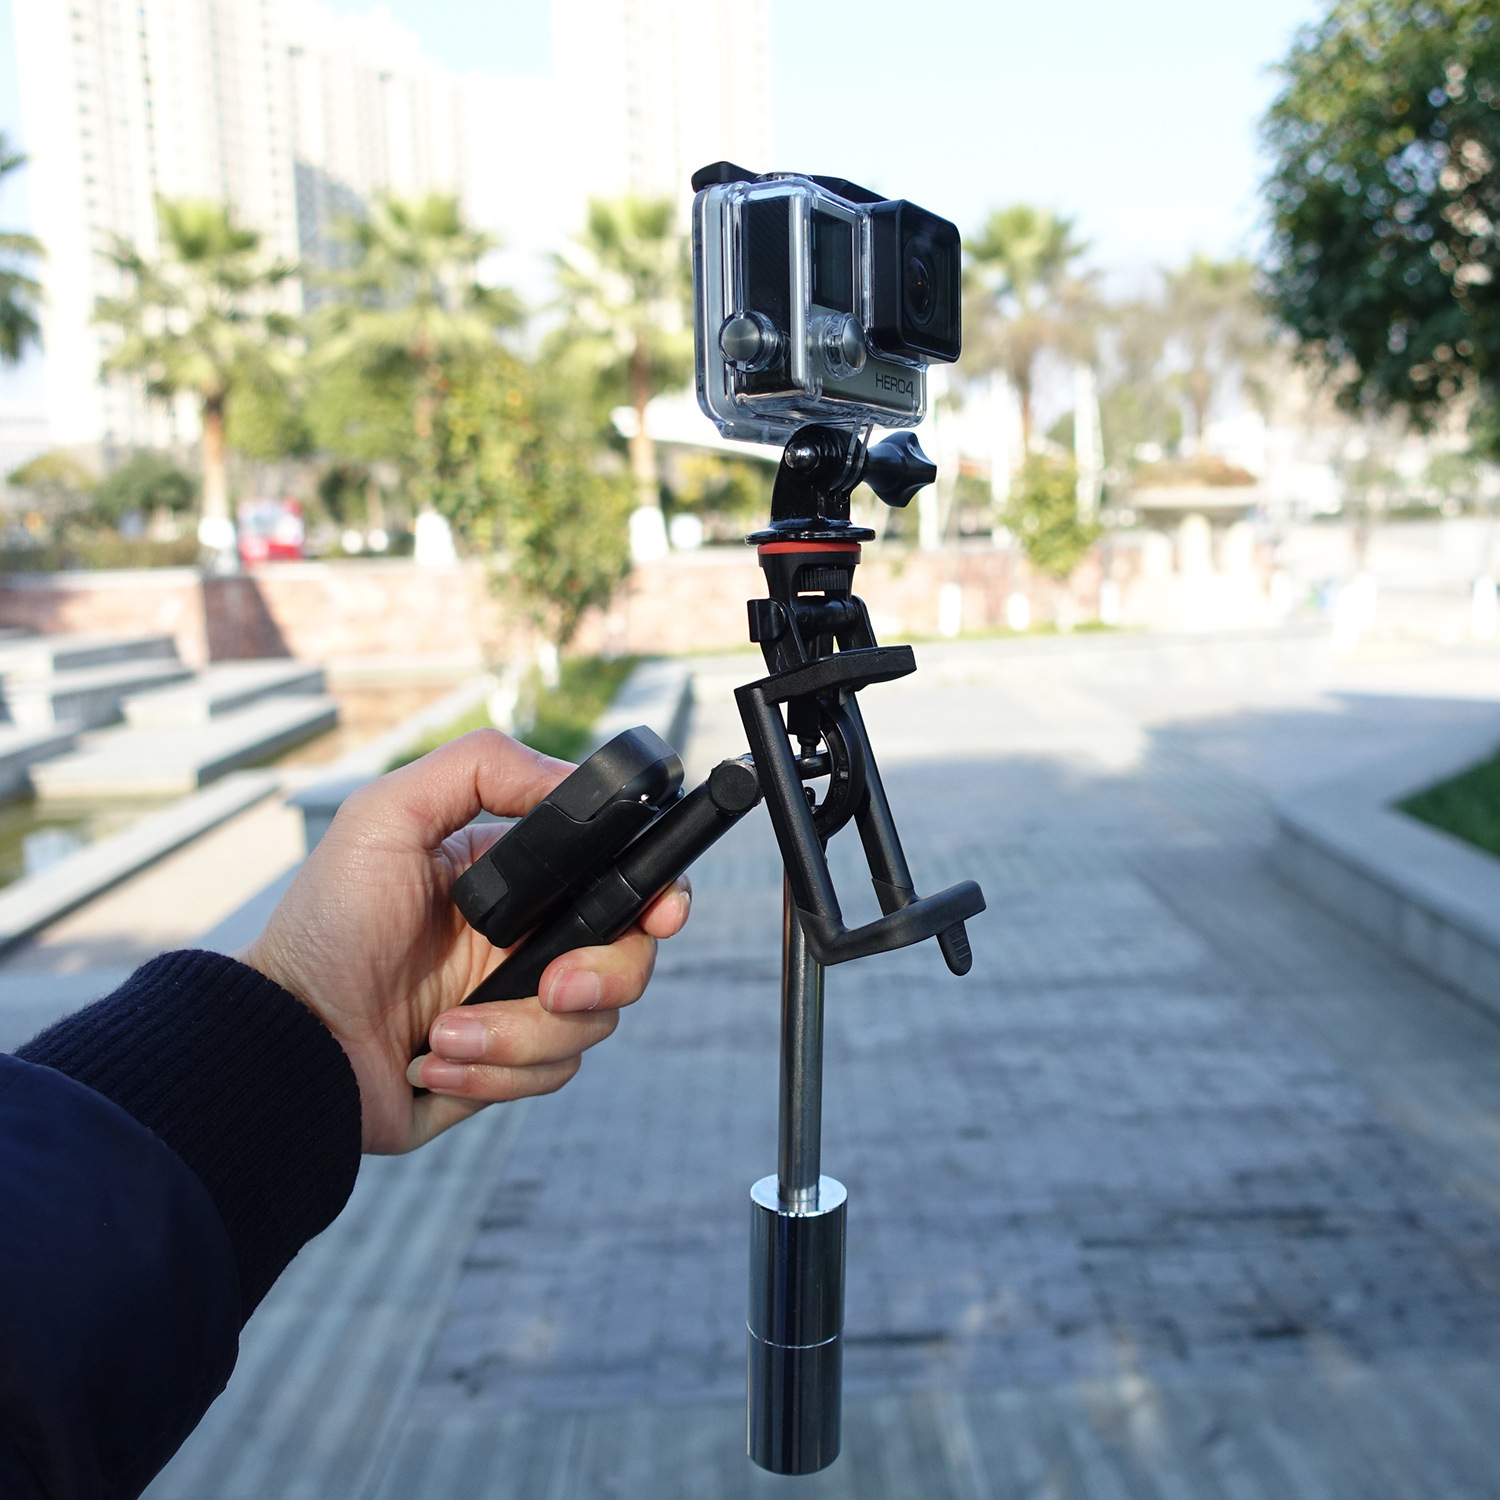 //cdn.nhanh.vn/cdn/store/5058/psCT/20171013/5364150/Universal_steadicam_for_Smart_phone__Gopro__Action_camera_(3967064114_1411895627).jpg